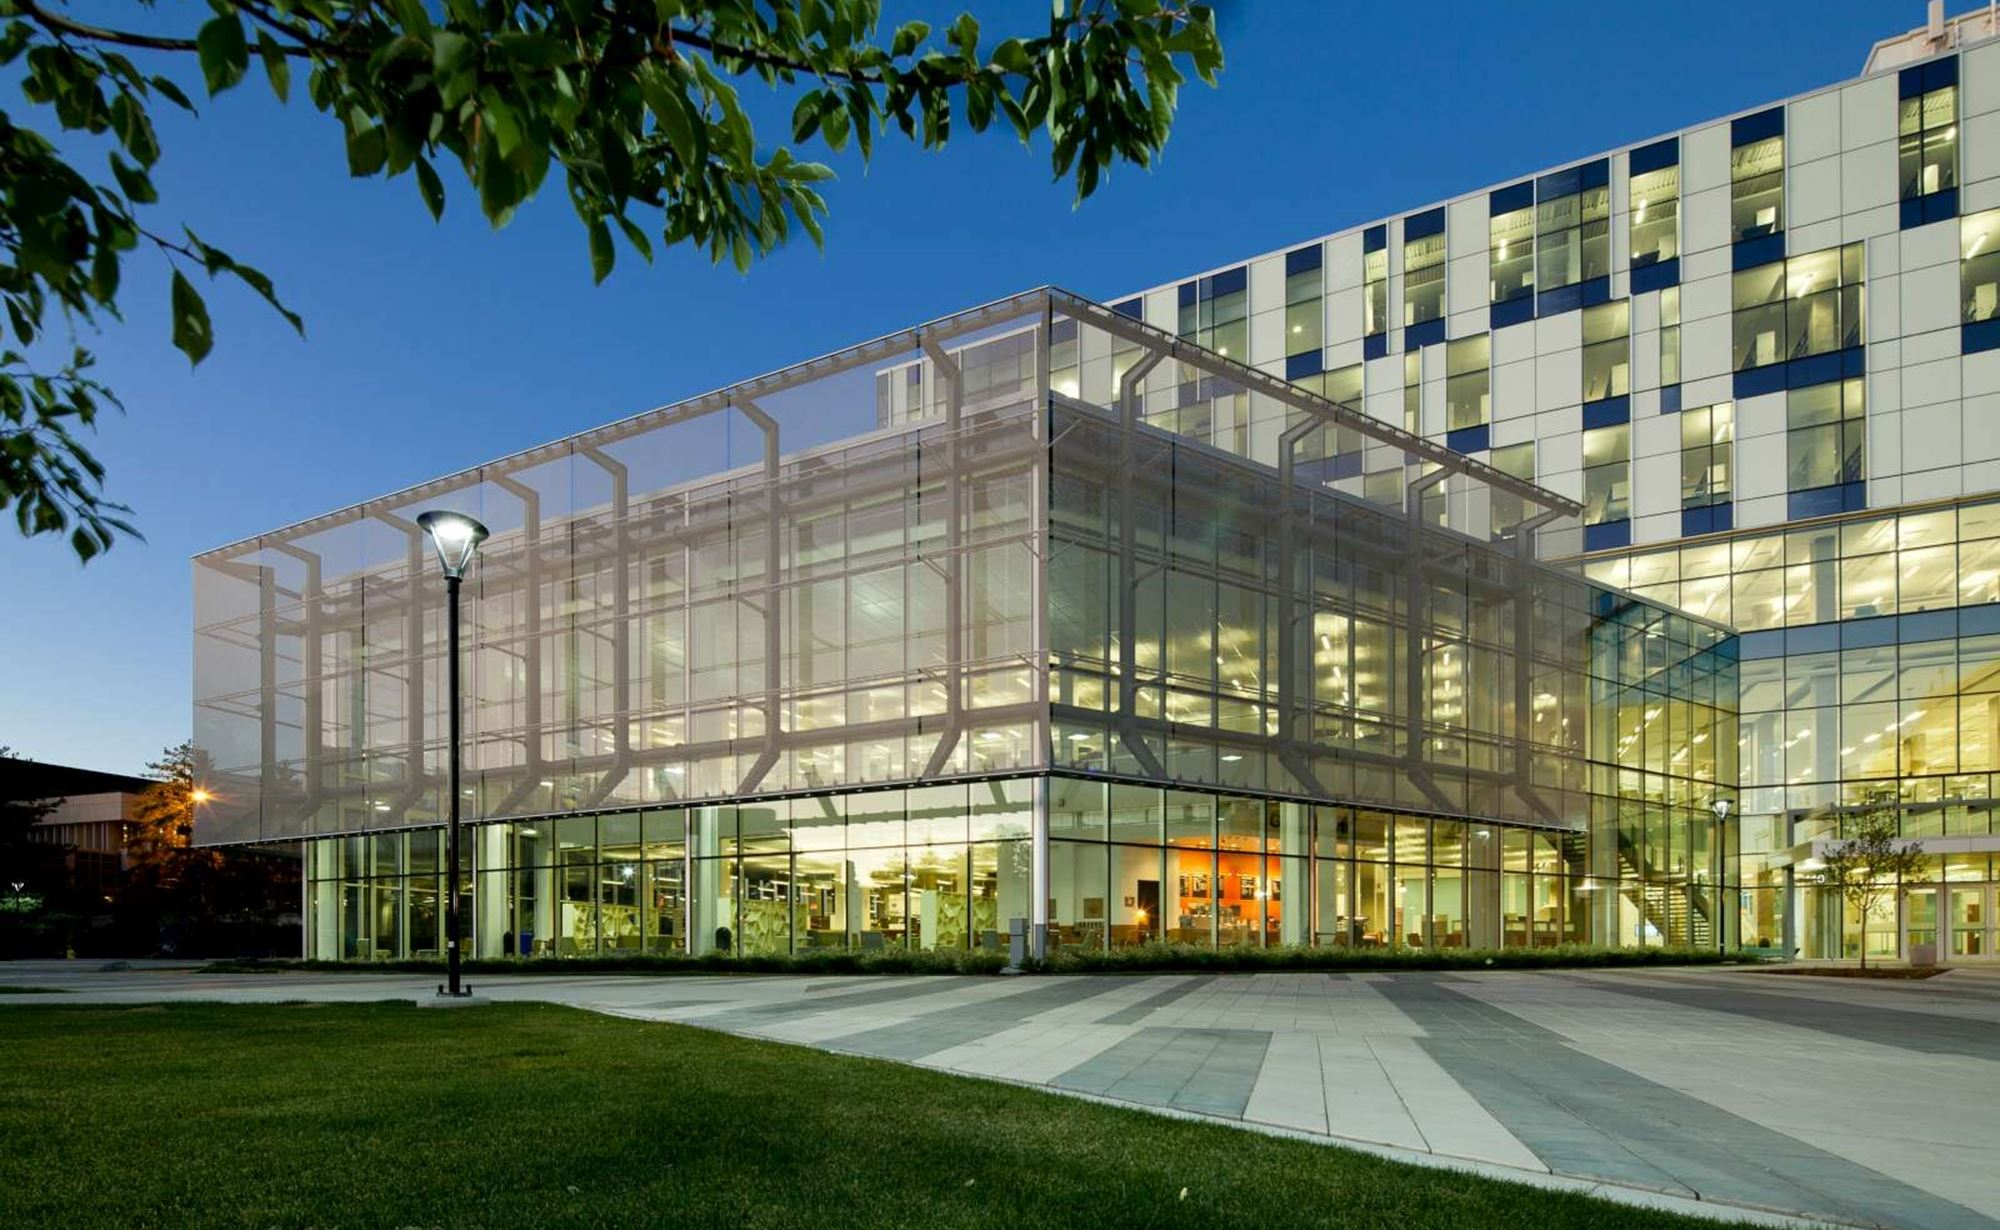 University of Calgary Taylor Family Library with Cambridge Architectural Mesh